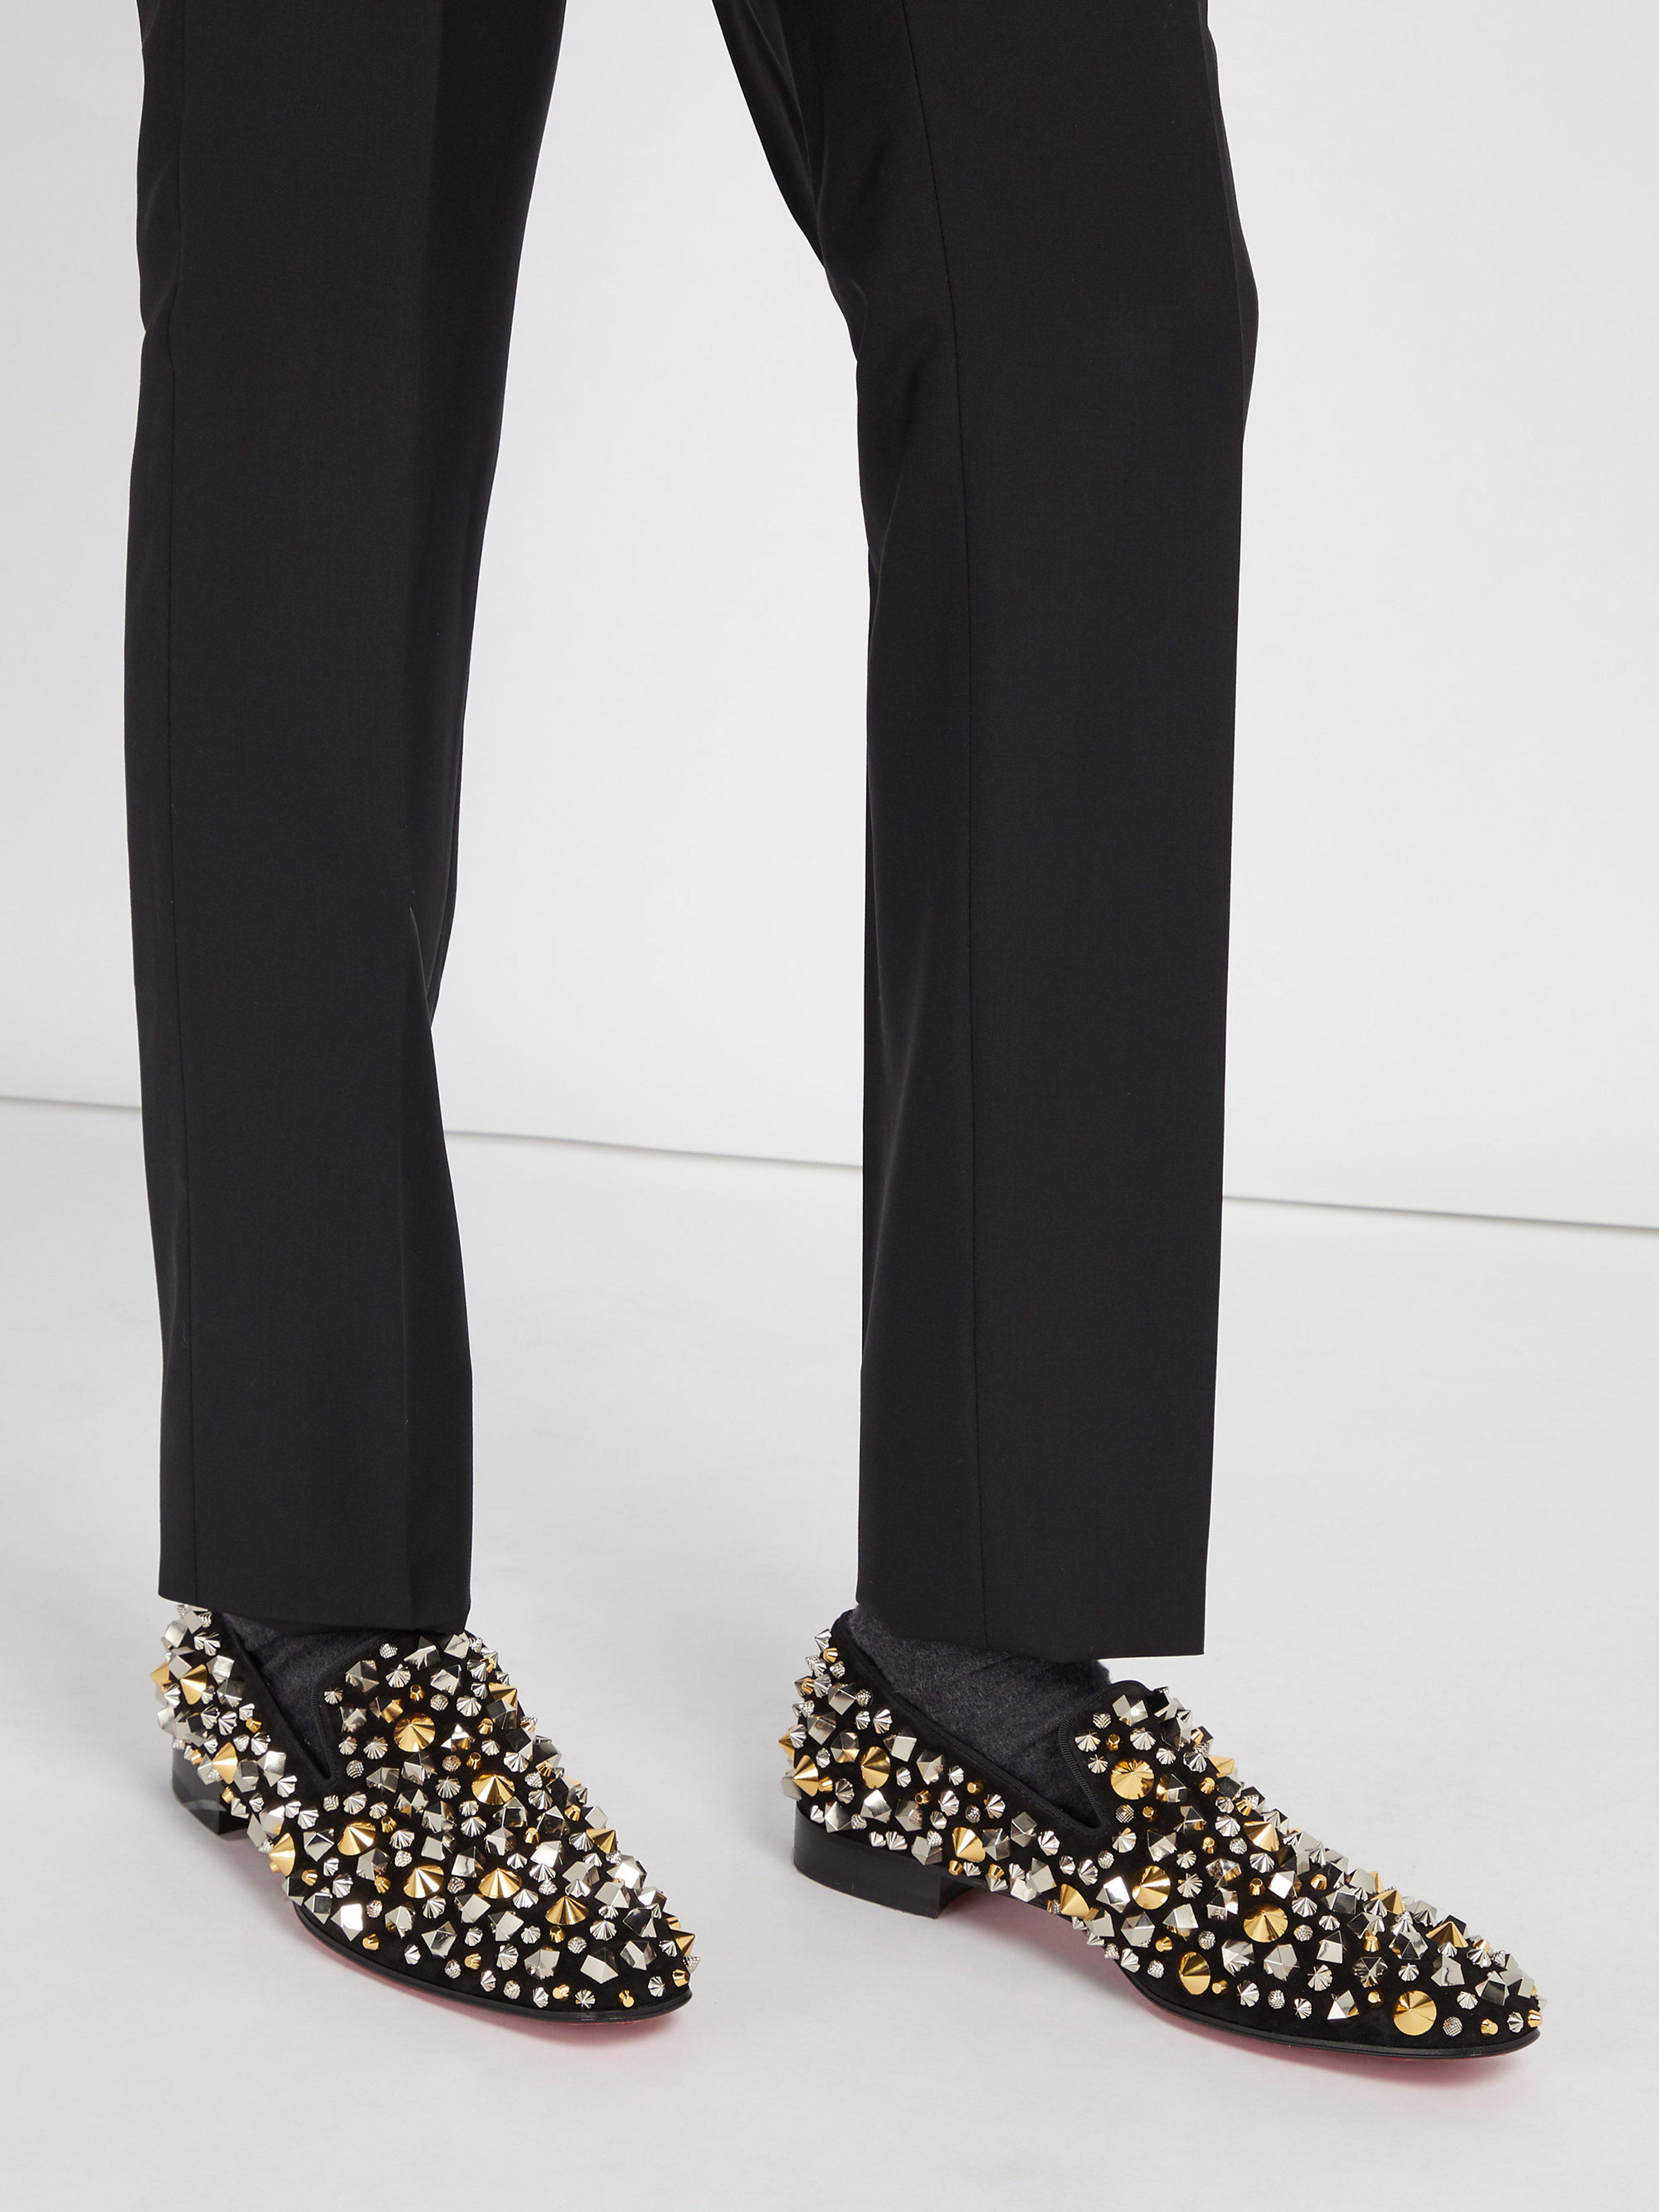 161ad73a3de Christian Louboutin Dandelion Spikes Suede Loafers in Black for Men - Save  2% - Lyst